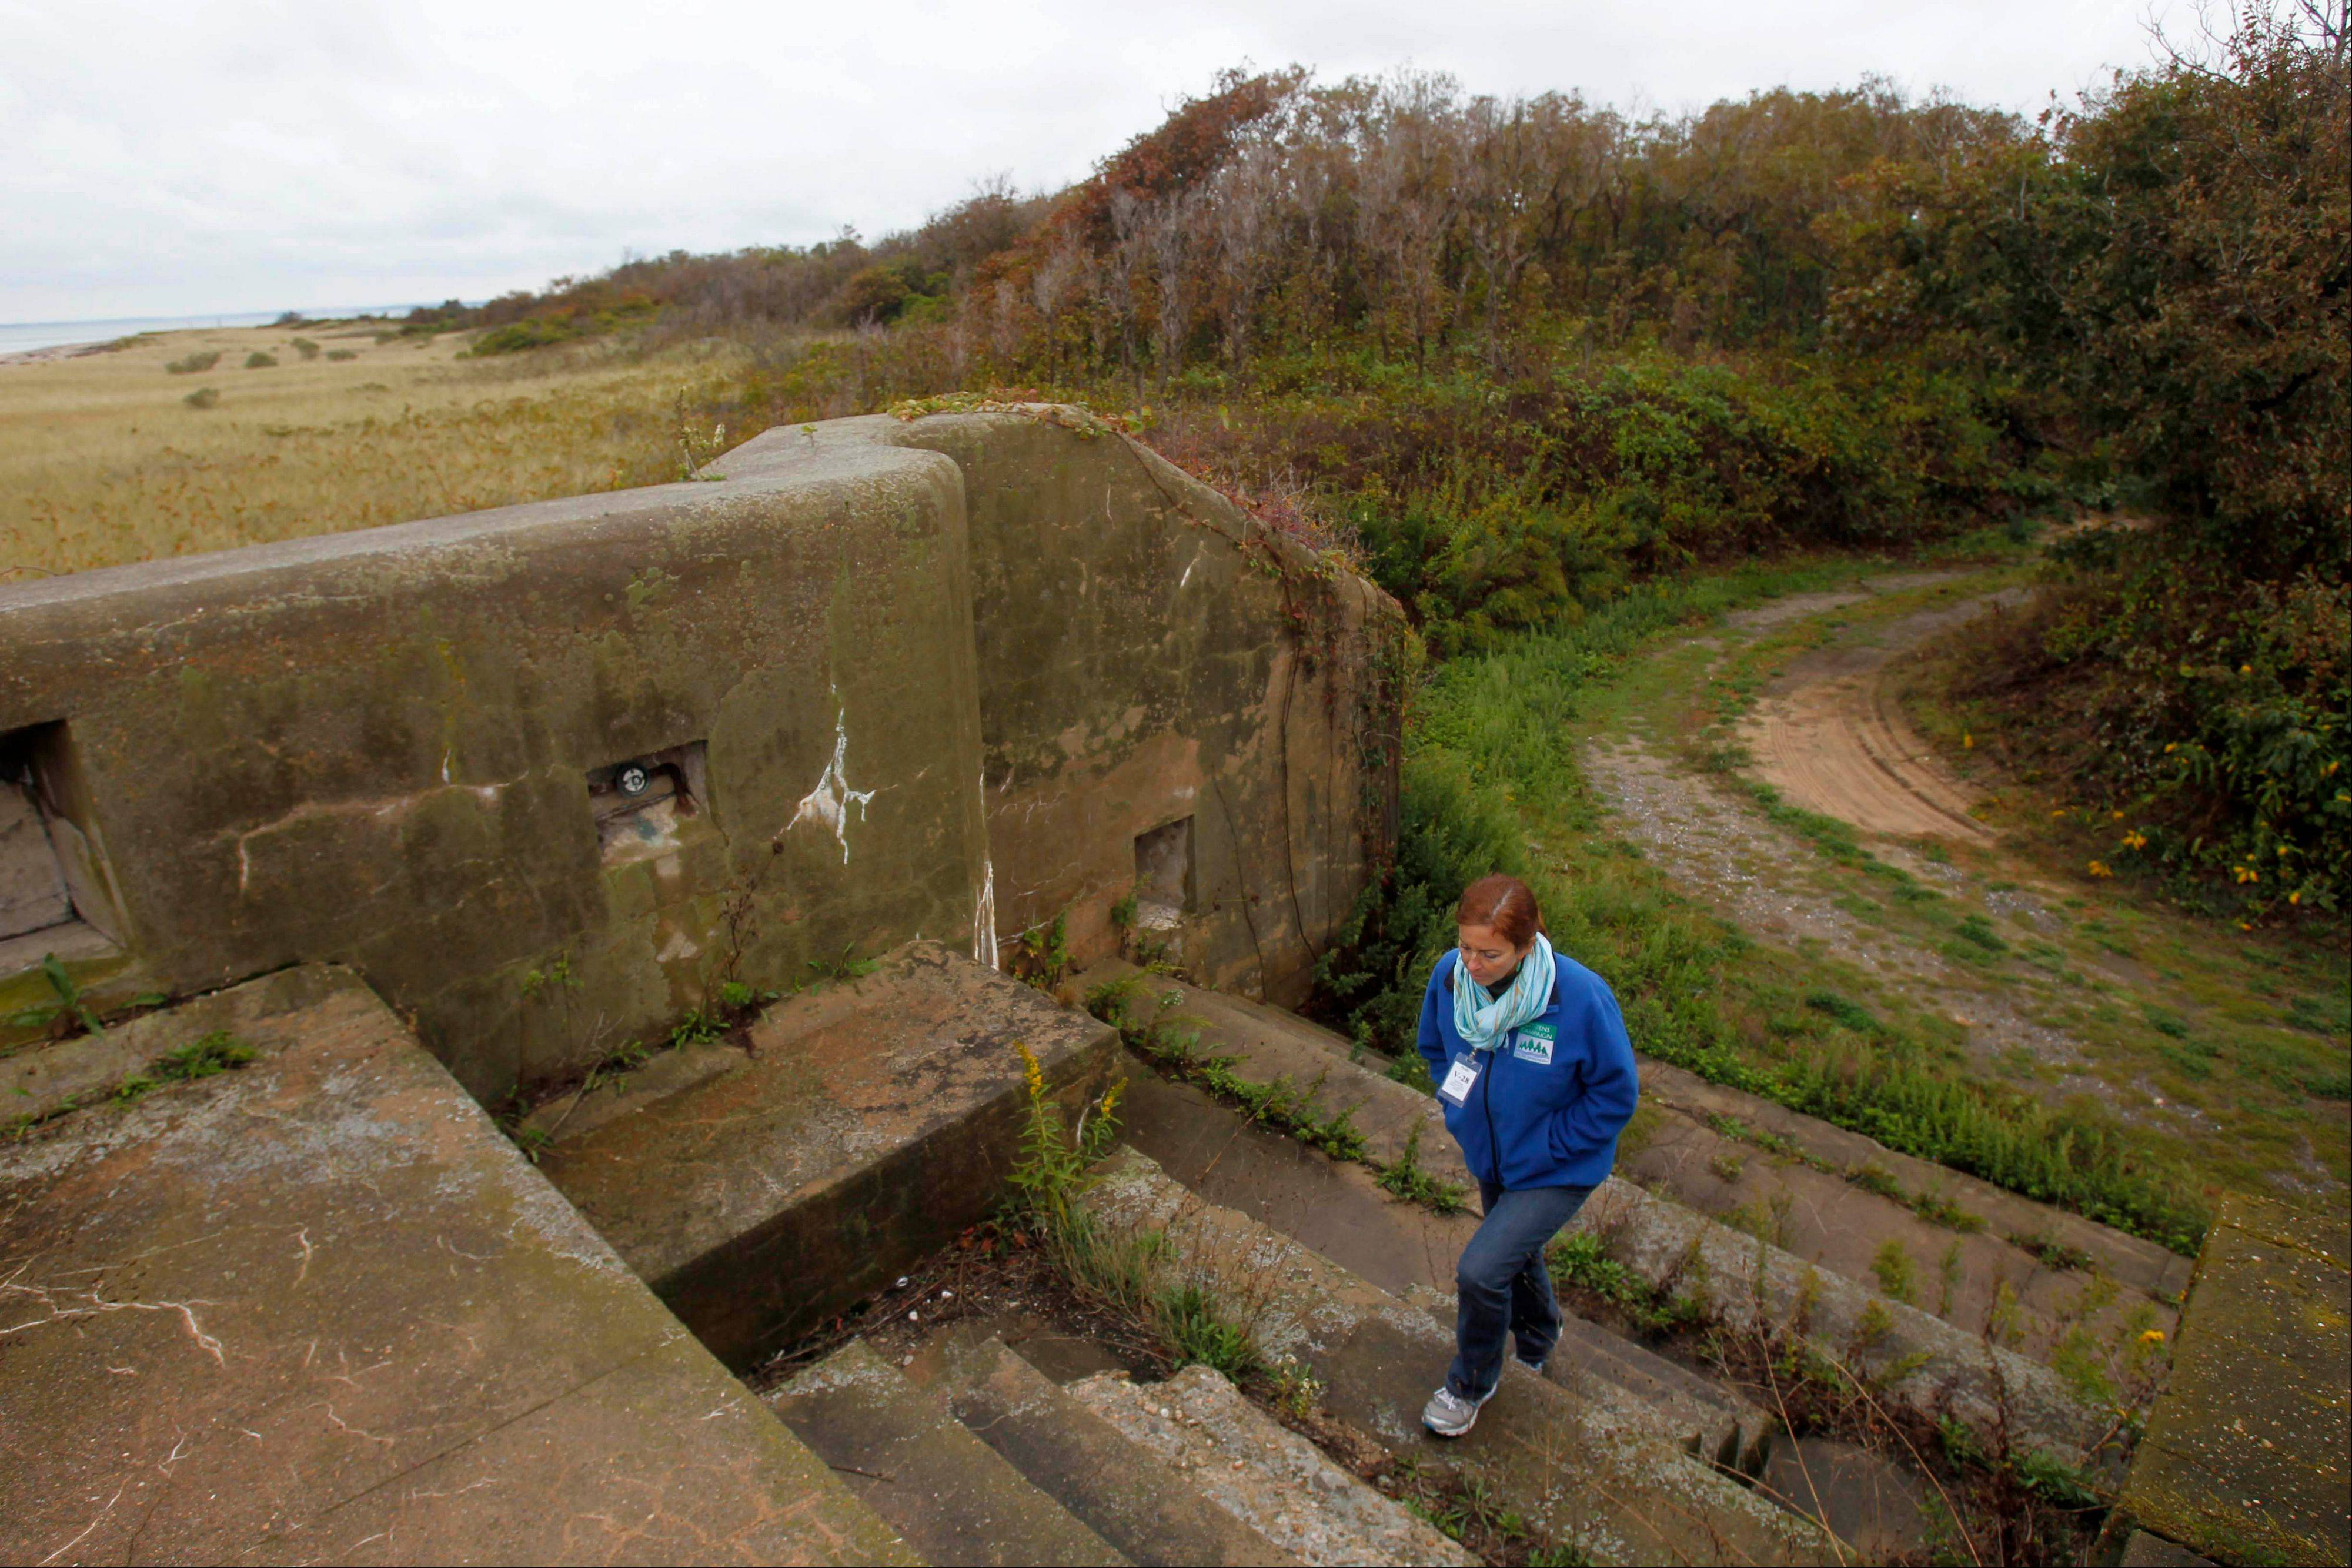 Adrienne Esposito, director of Citizens Campaign for the Environment, walks to the top of an old battery, previously used for defense, on Plum Island in New York. Environmental groups on both sides of Long Island Sound have for several years called for the property to be kept as a nature preserve, but the government hopes to sell the island.